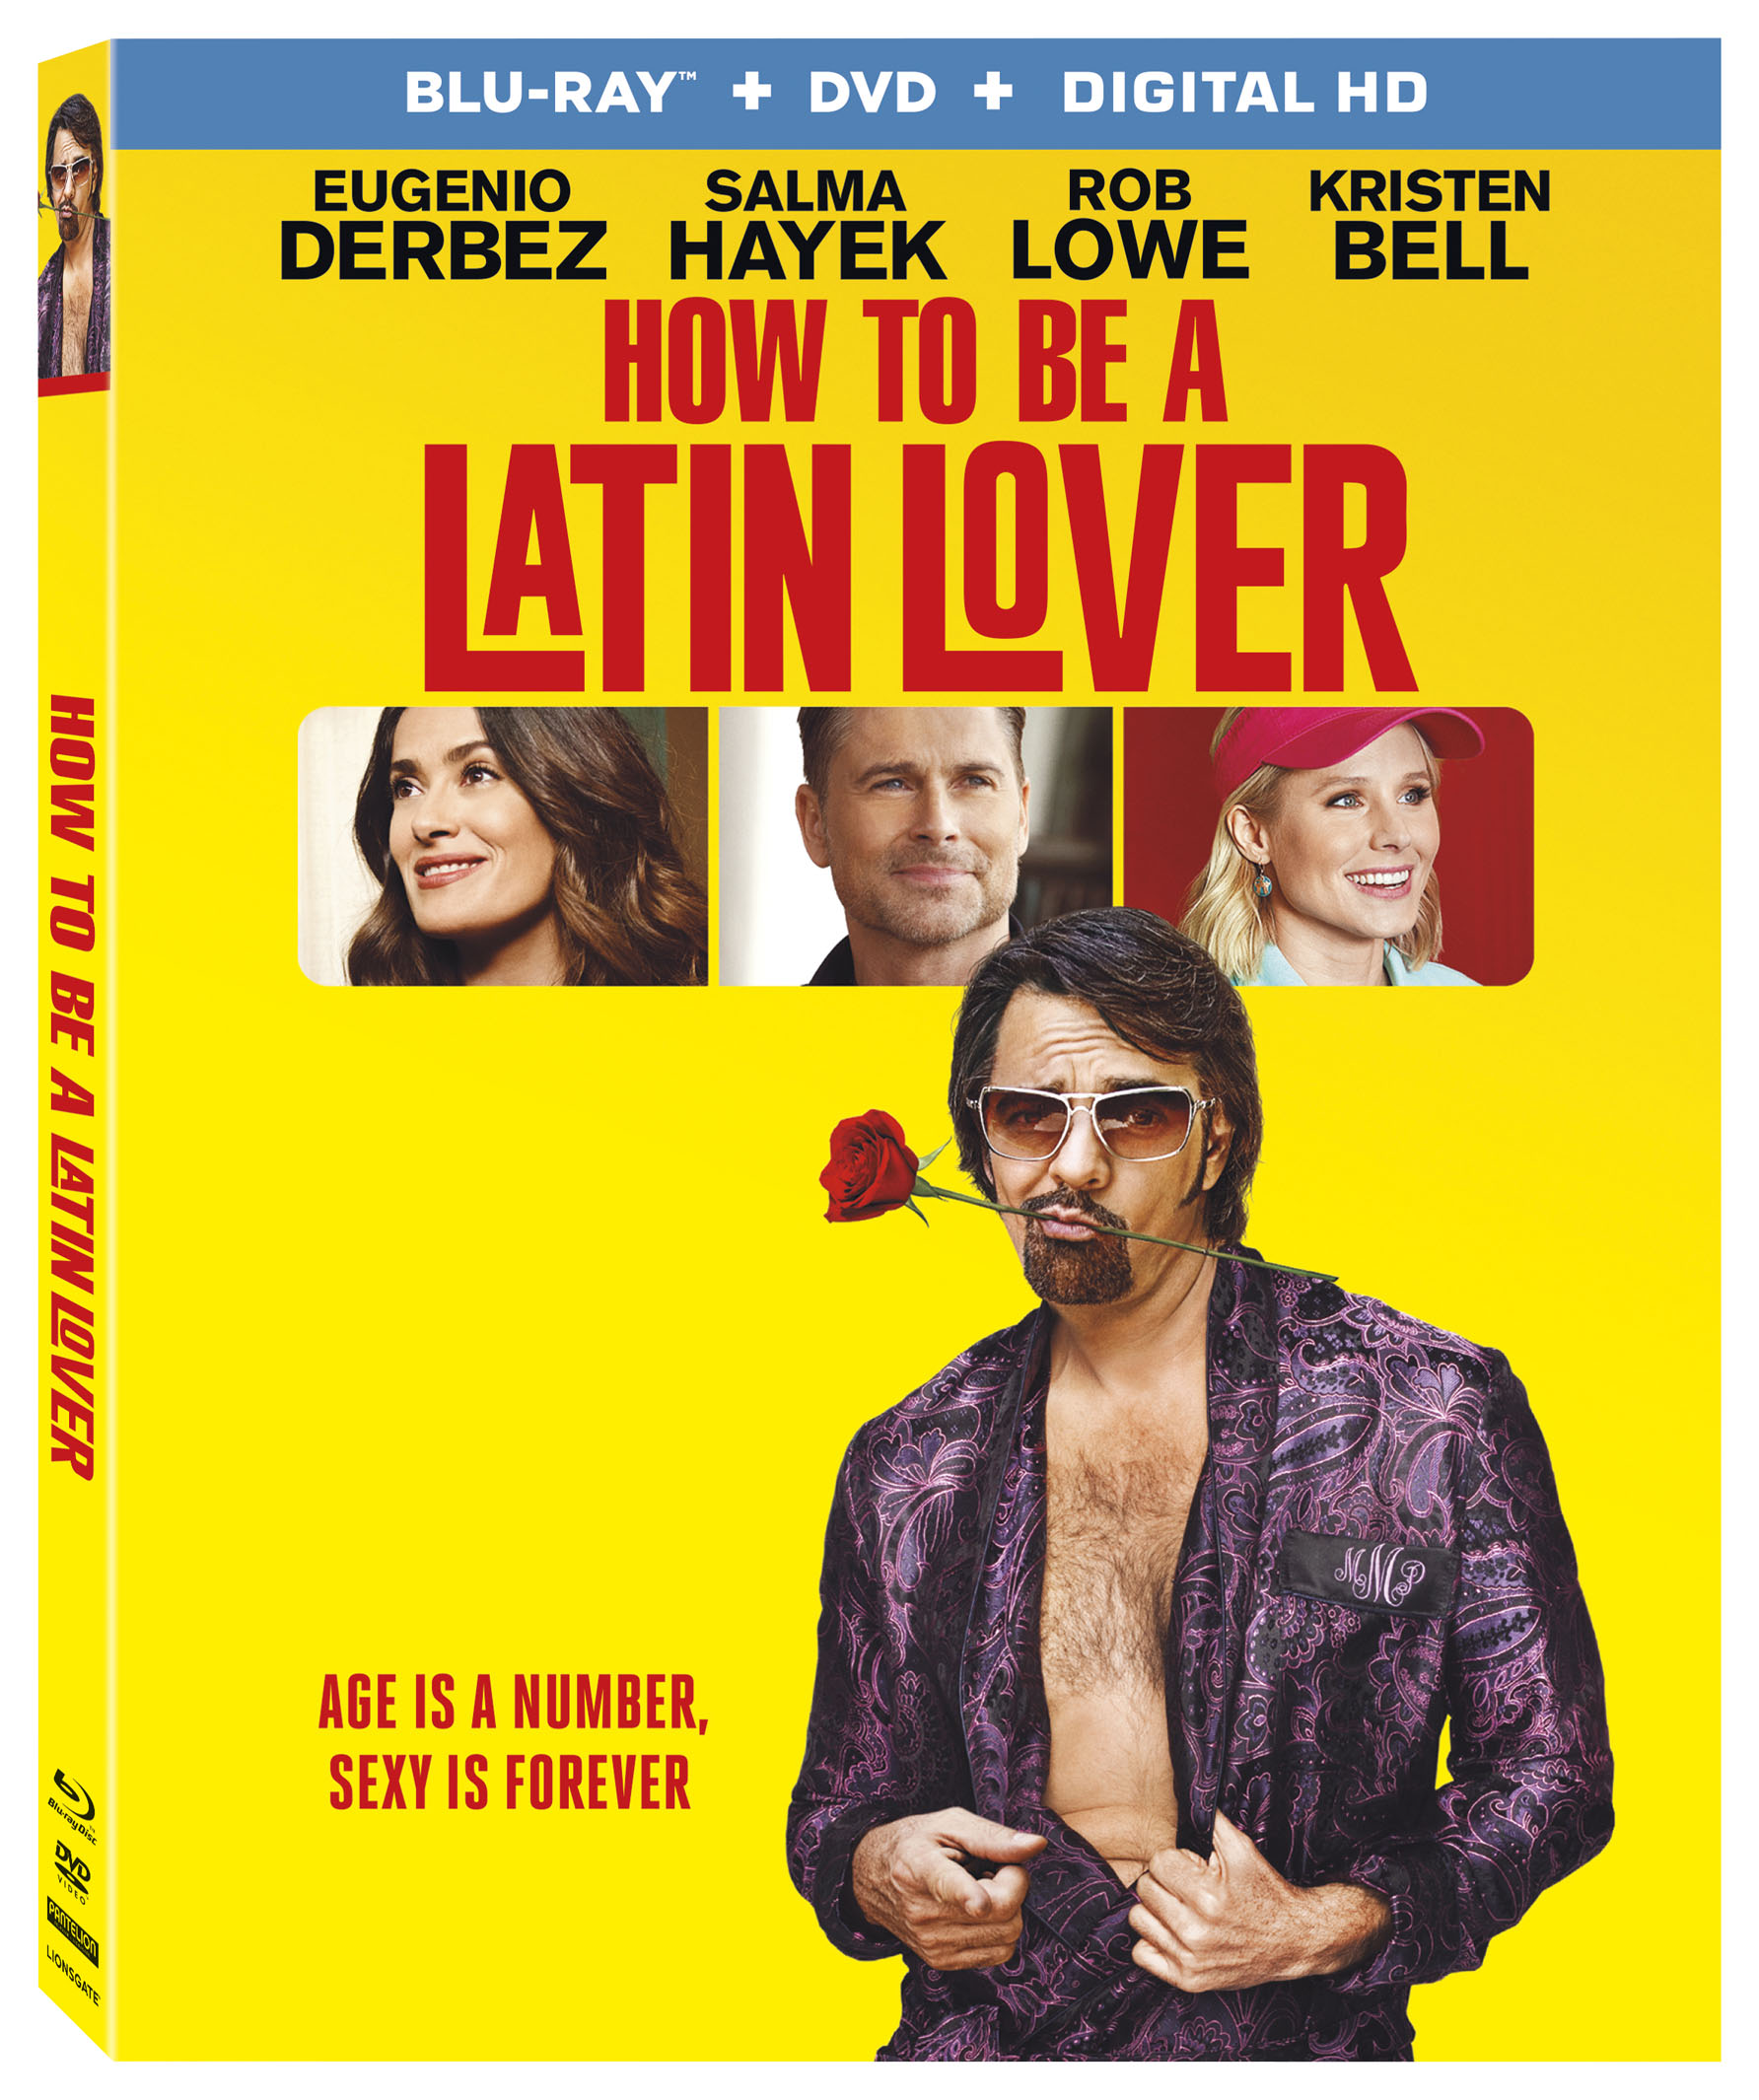 How To Be A Latin Lover (Blu-ray + DVD + Digital HD) by LIONS GATE